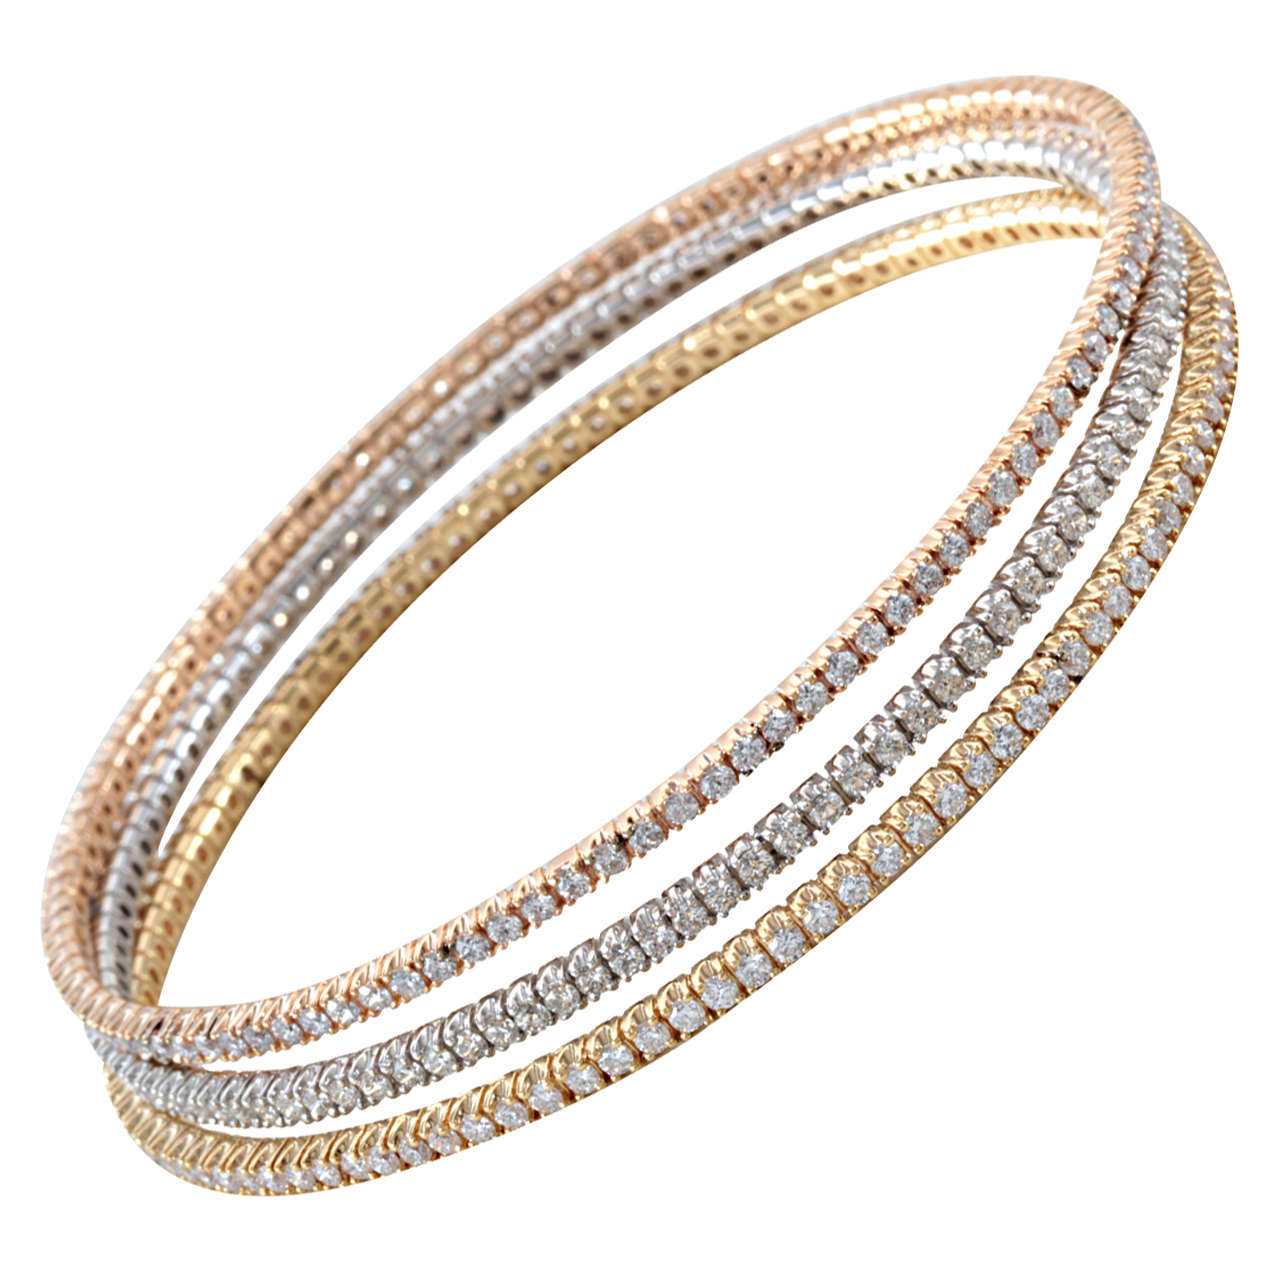 set karat of bangles carat gold lovely grams jewelry wholesale bracelets bangle best